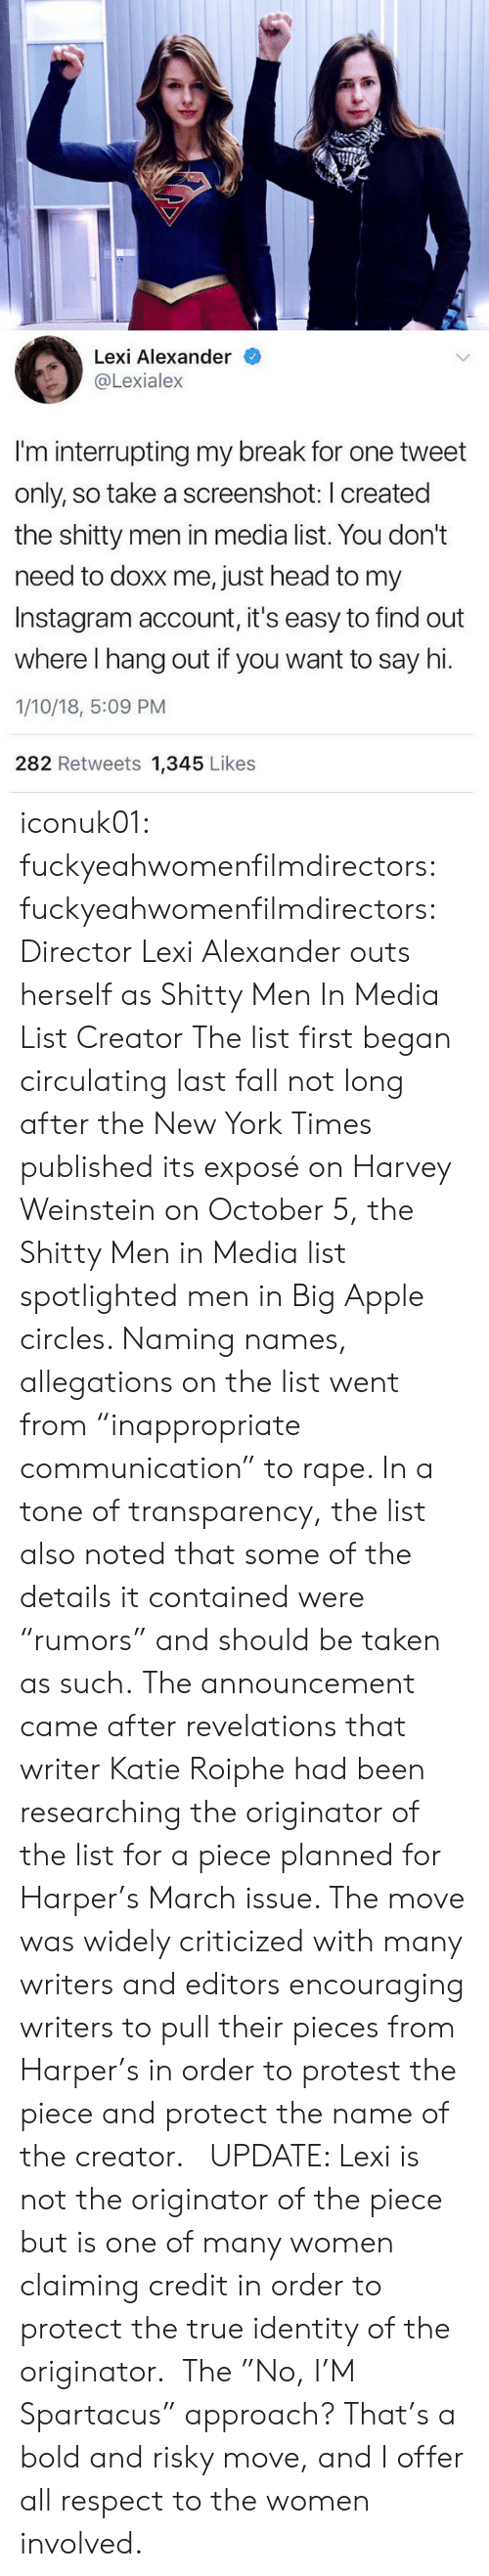 """Apple, Bilbo, and Fall: Lexi Alexander  @Lexiale:x  I'm interrupting my break for one tweet  only, so take a screenshot: I created  the shitty men in media list. You don't  need to doxx me, just head to my  Instagram account, it's easy to find out  where I hang out if you want to say hi.  1/10/18, 5:09 PM  282 Retweets 1,345 Likes iconuk01: fuckyeahwomenfilmdirectors:  fuckyeahwomenfilmdirectors:  Director Lexi Alexander outs herself as Shitty Men In Media List Creator The list first began circulating last fall not long after the New York Times published its exposé on Harvey Weinstein on October 5, the Shitty Men in Media list spotlighted men in Big Apple circles. Naming names, allegations on the list went from """"inappropriate communication"""" to rape. In a tone of transparency, the list also noted that some of the details it contained were """"rumors"""" and should be taken as such. The announcement came after revelations that writer Katie Roiphe had been researching the originator of the list for a piece planned for Harper's March issue. The move was widely criticized with many writers and editors encouraging writers to pull their pieces from Harper's in order to protest the piece and protect the name of the creator.  UPDATE: Lexi is not the originator of the piece but is one of many women claiming credit in order to protect the true identity of the originator.  The """"No, I'M Spartacus"""" approach?  That's a bold and risky move, and I offer all respect to the women involved."""